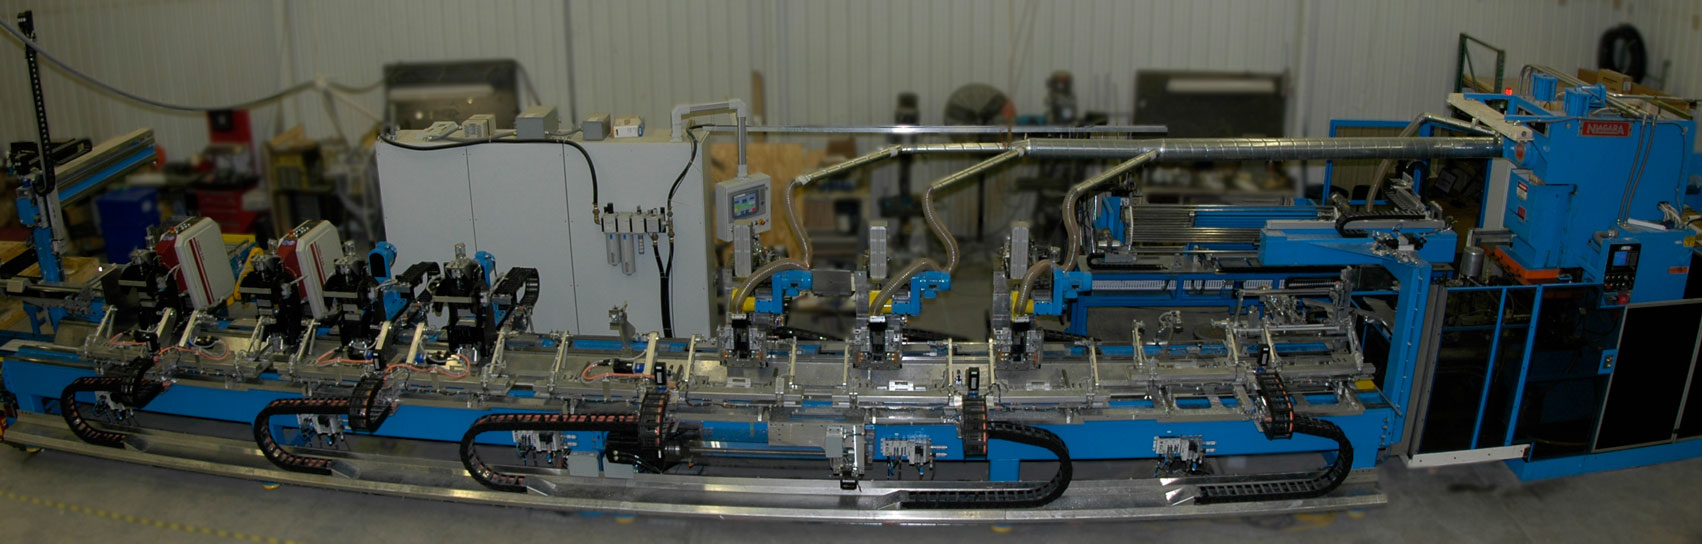 Large Scale, automated, multi-function, part fabrication machine